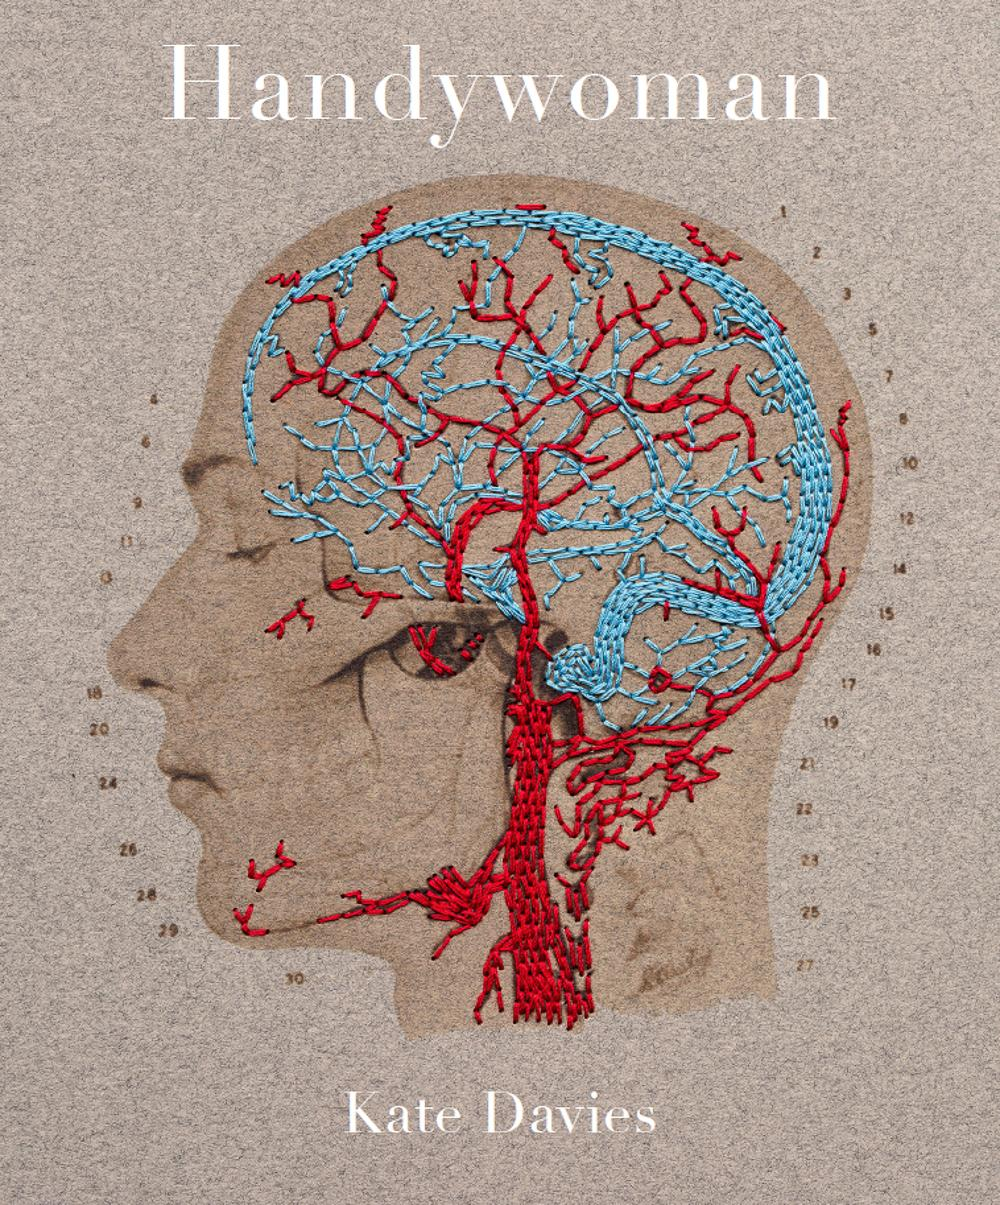 Handywoman cover showing embroidered brain and nervous system